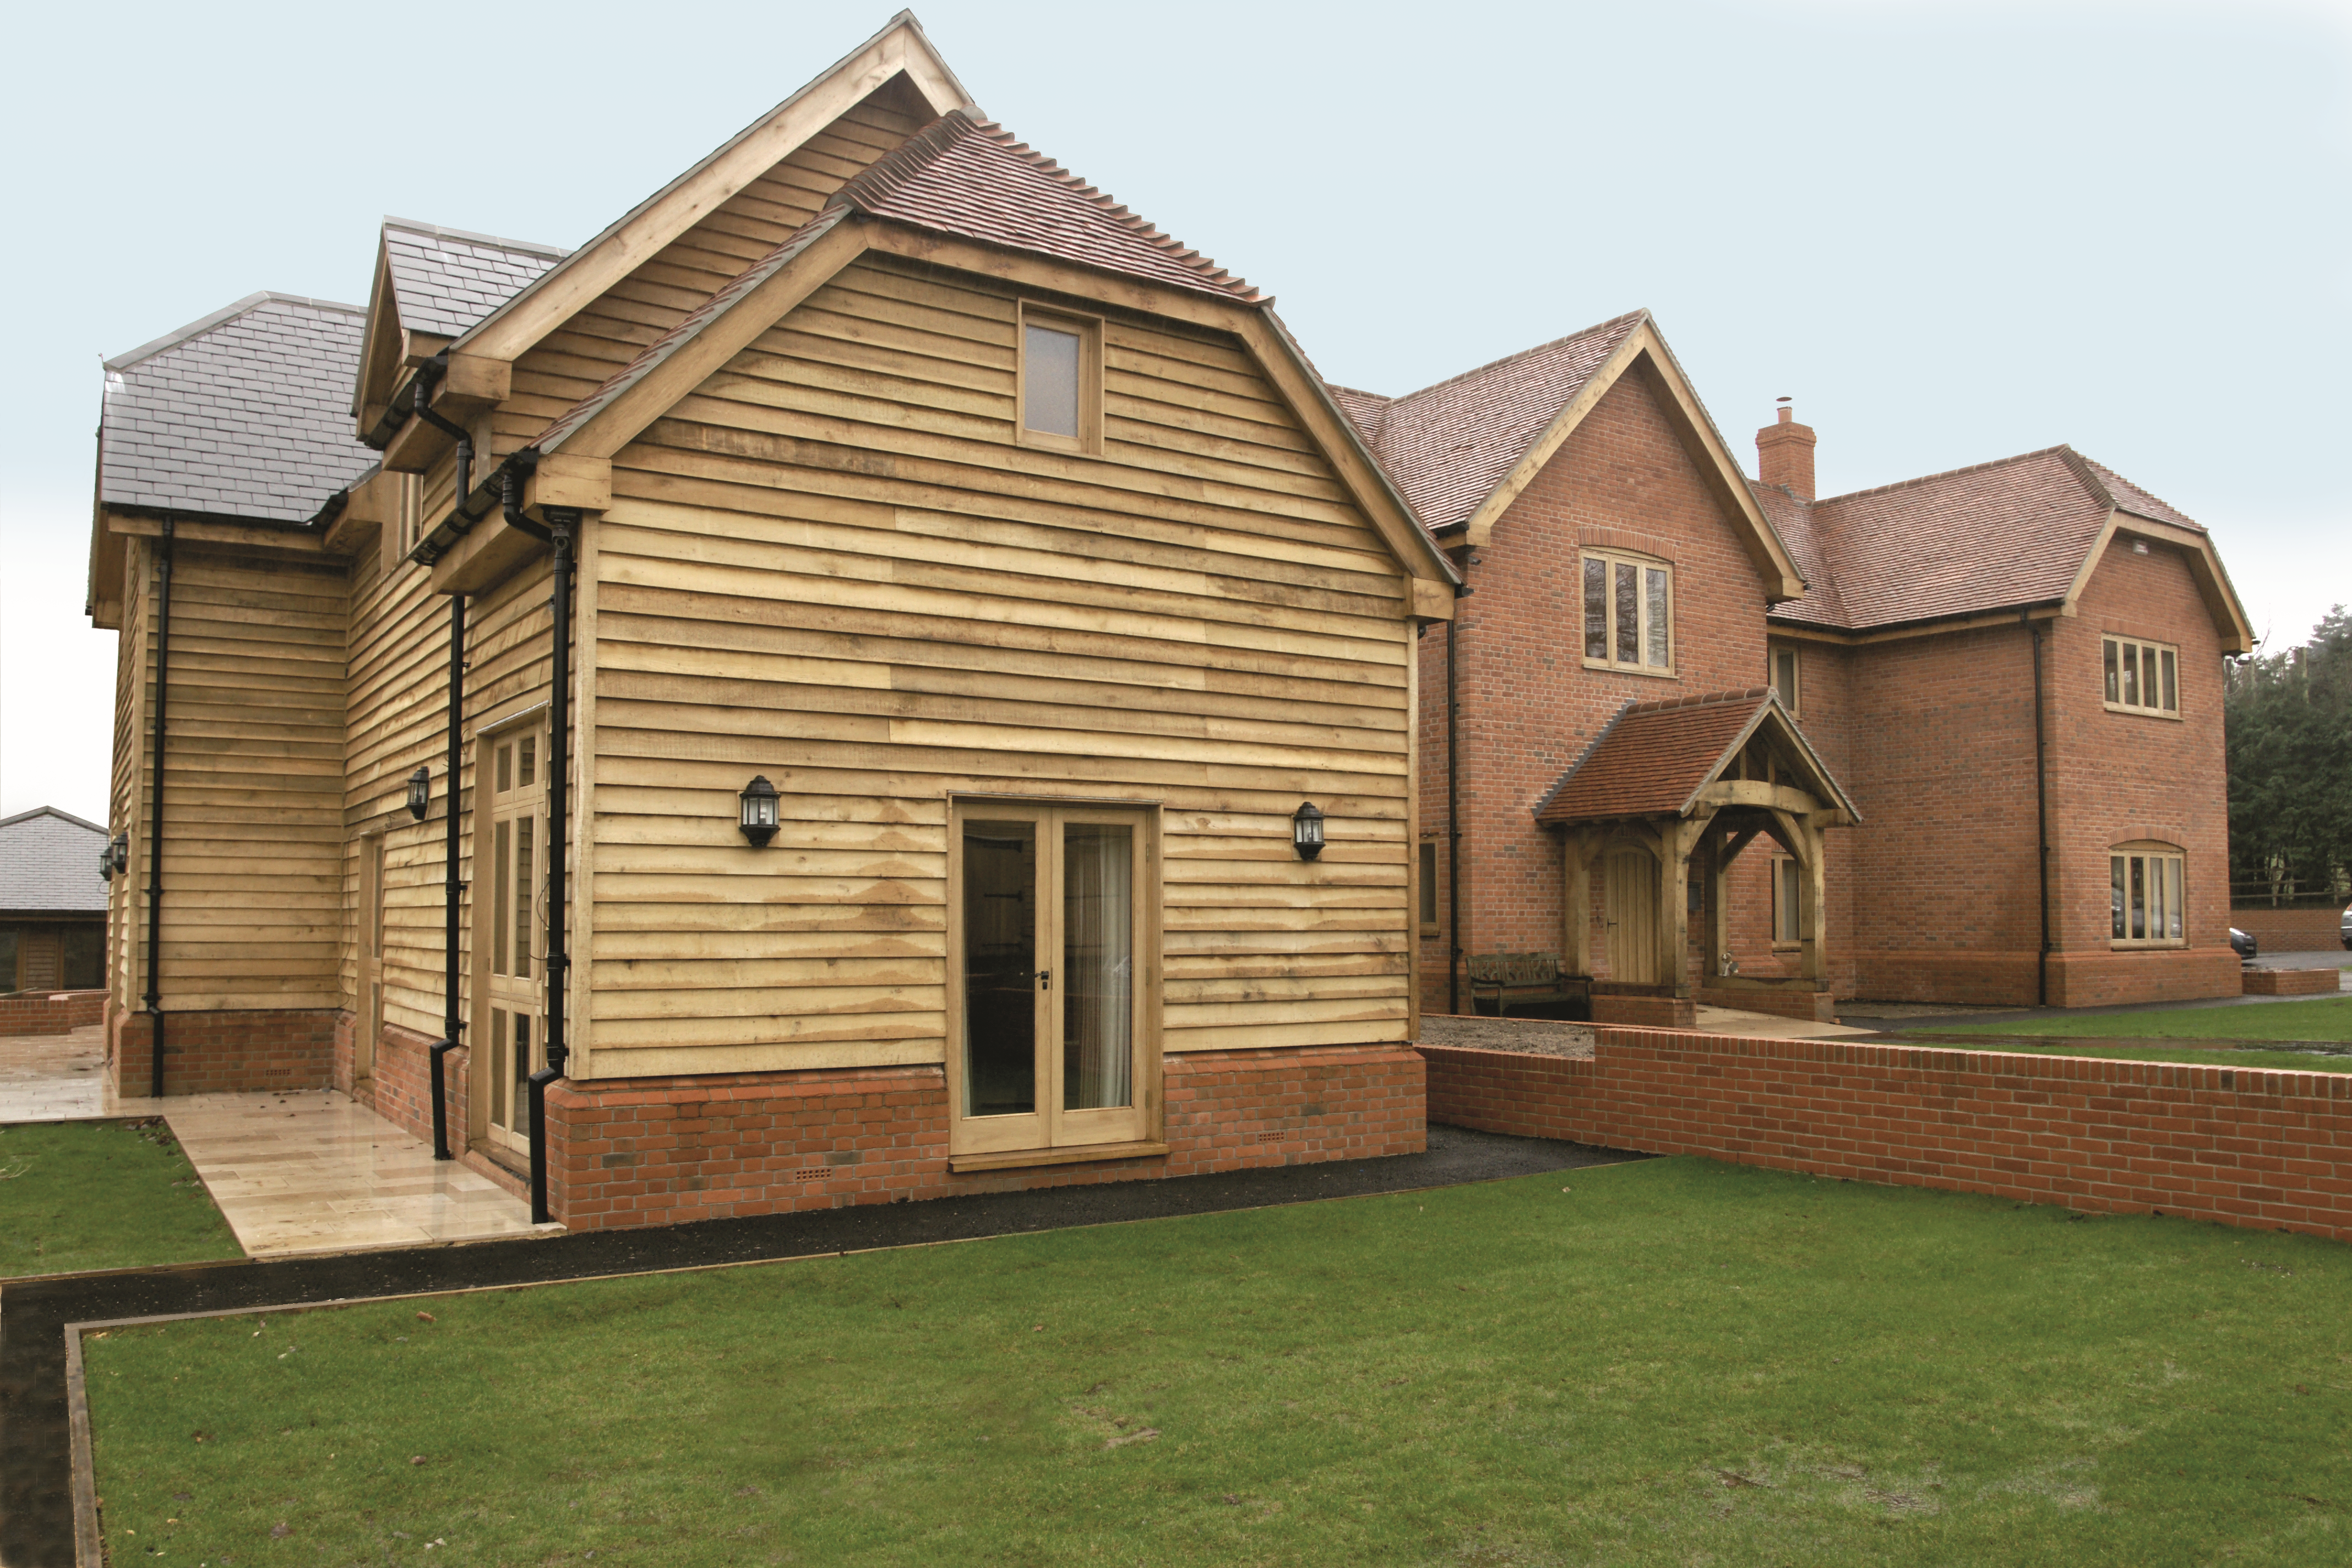 Oak feather edge cladding